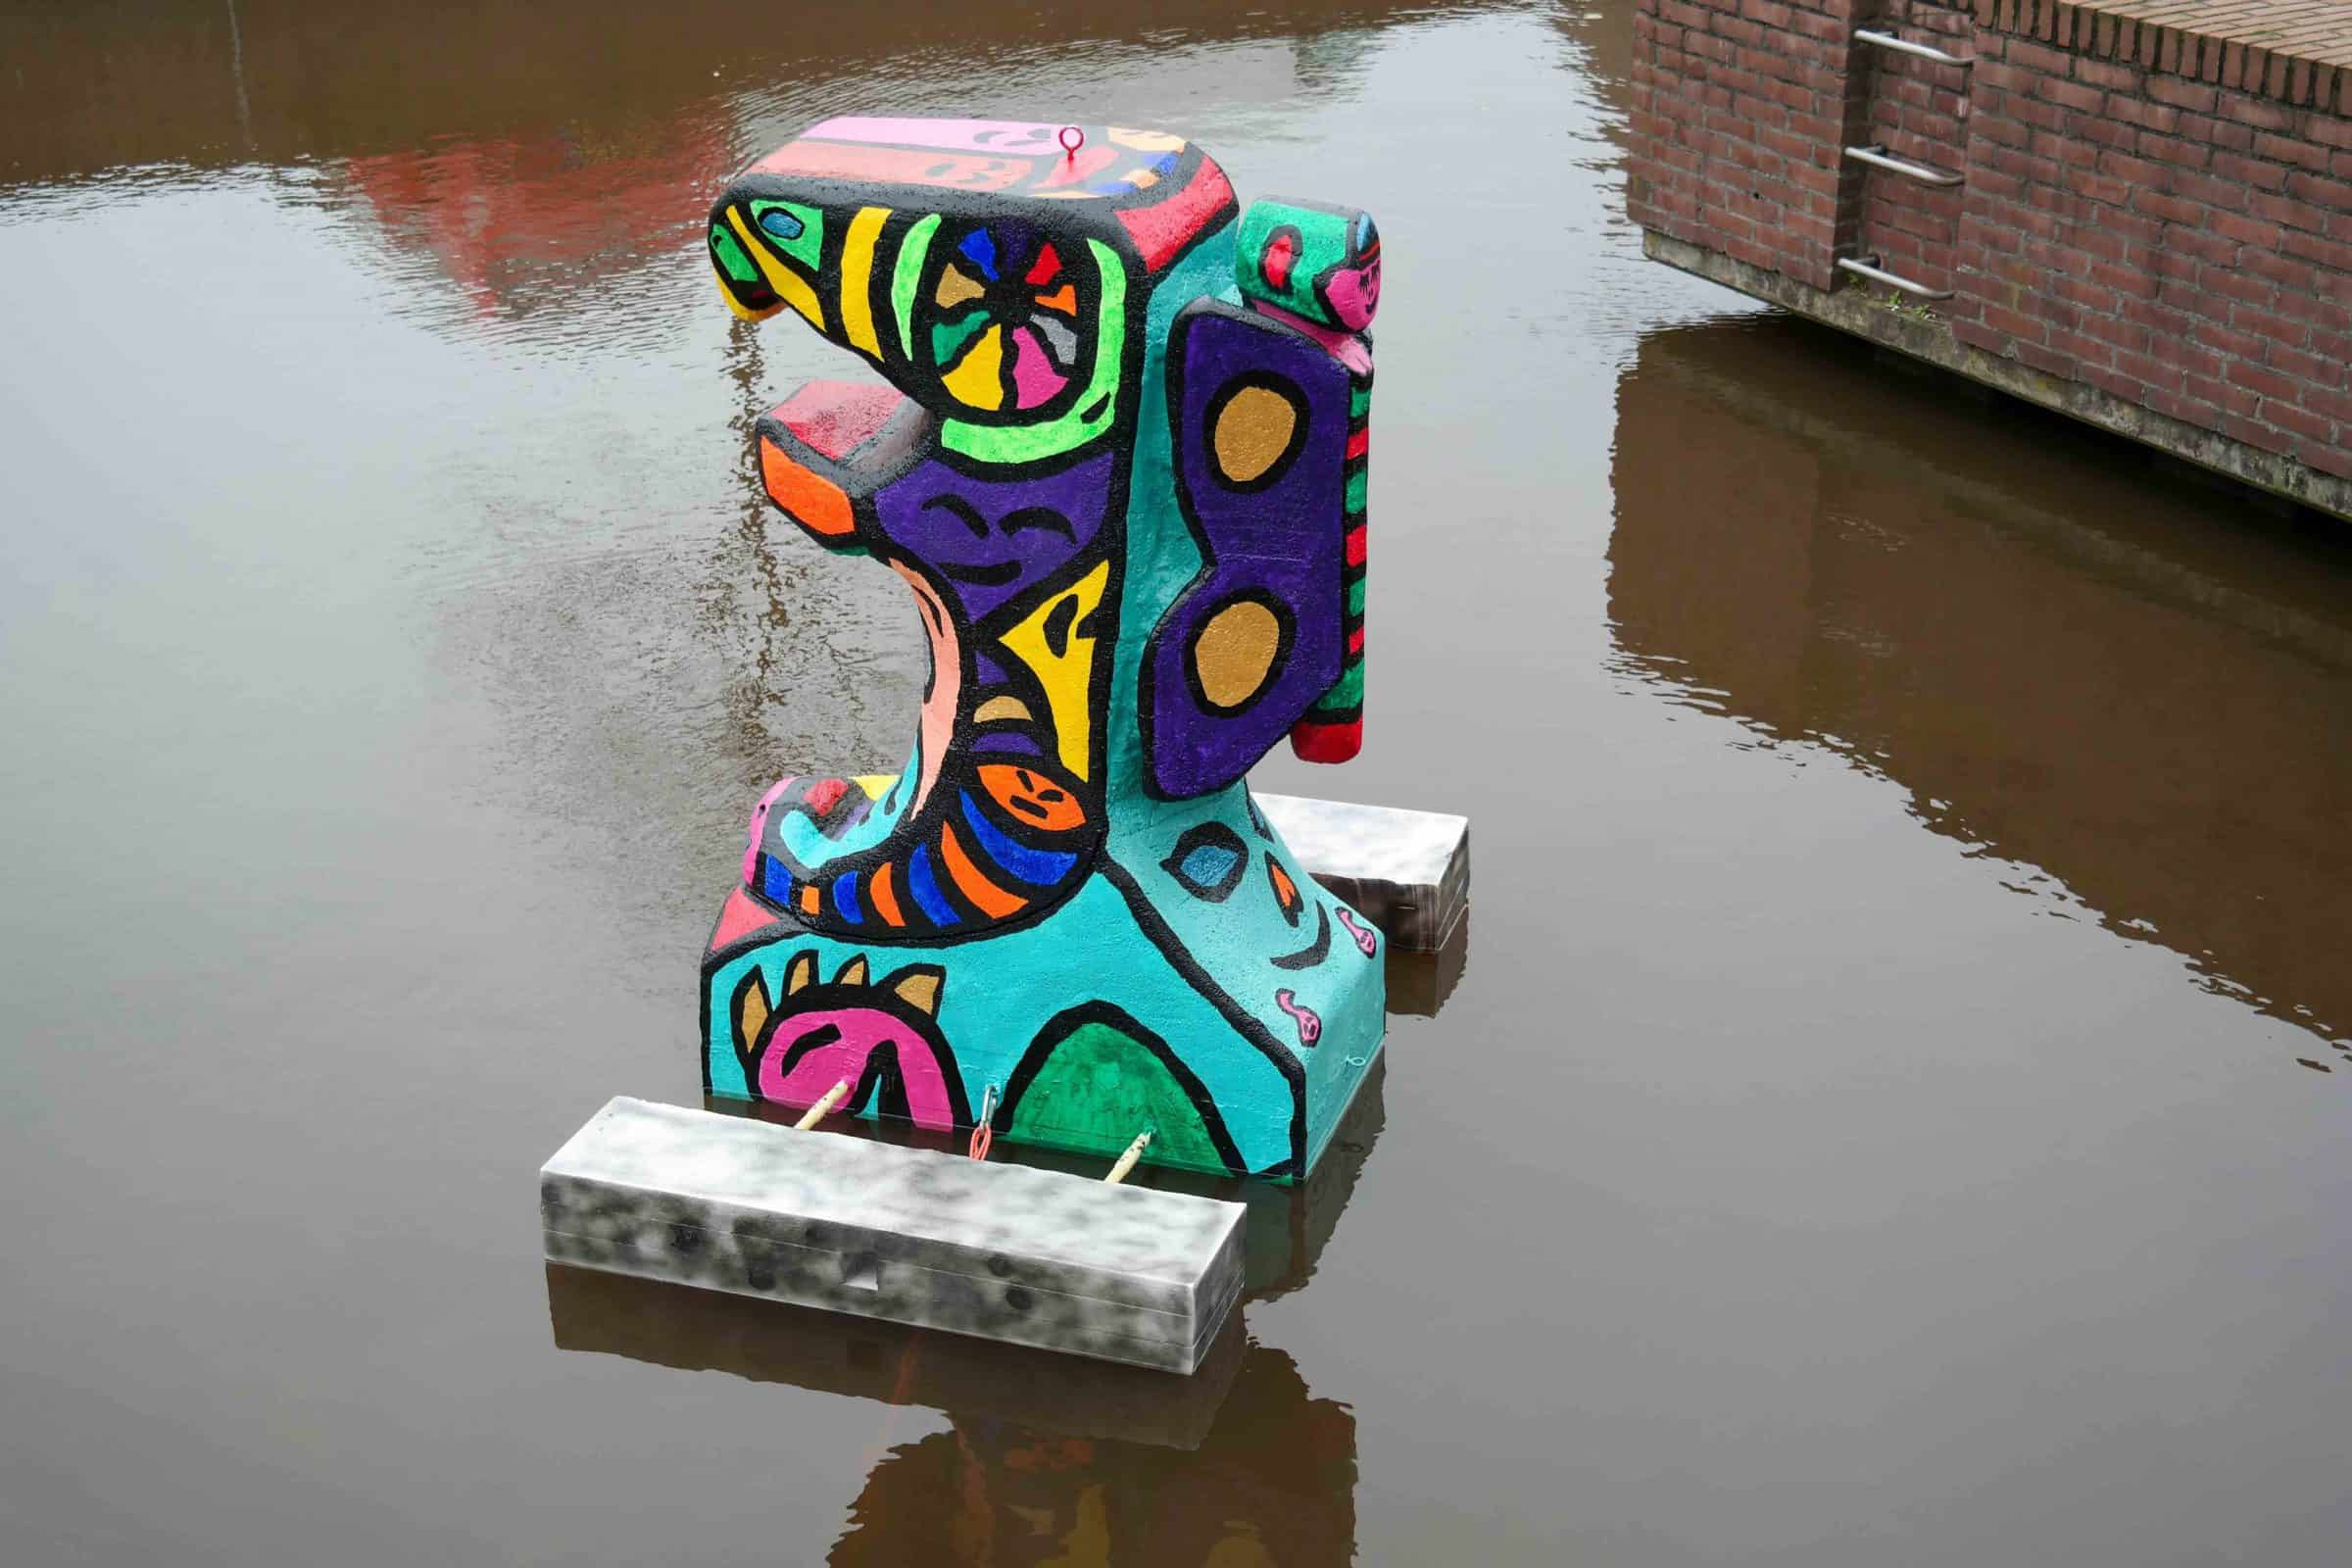 Jaboscreations-statue-in-the-water-5